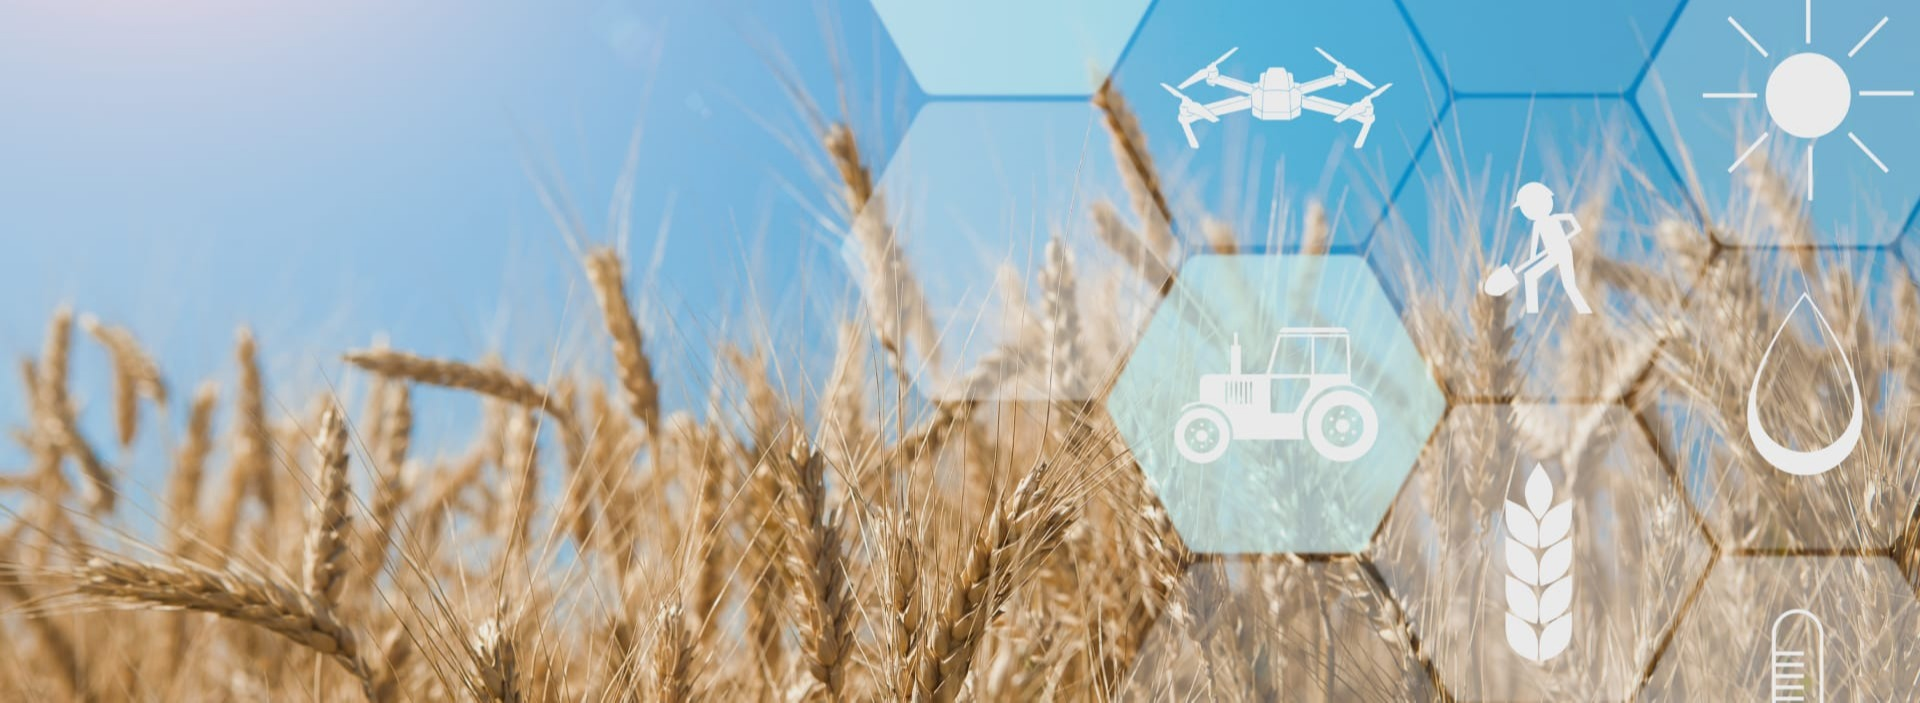 Big data in agriculture: Trends, challenges, solutions